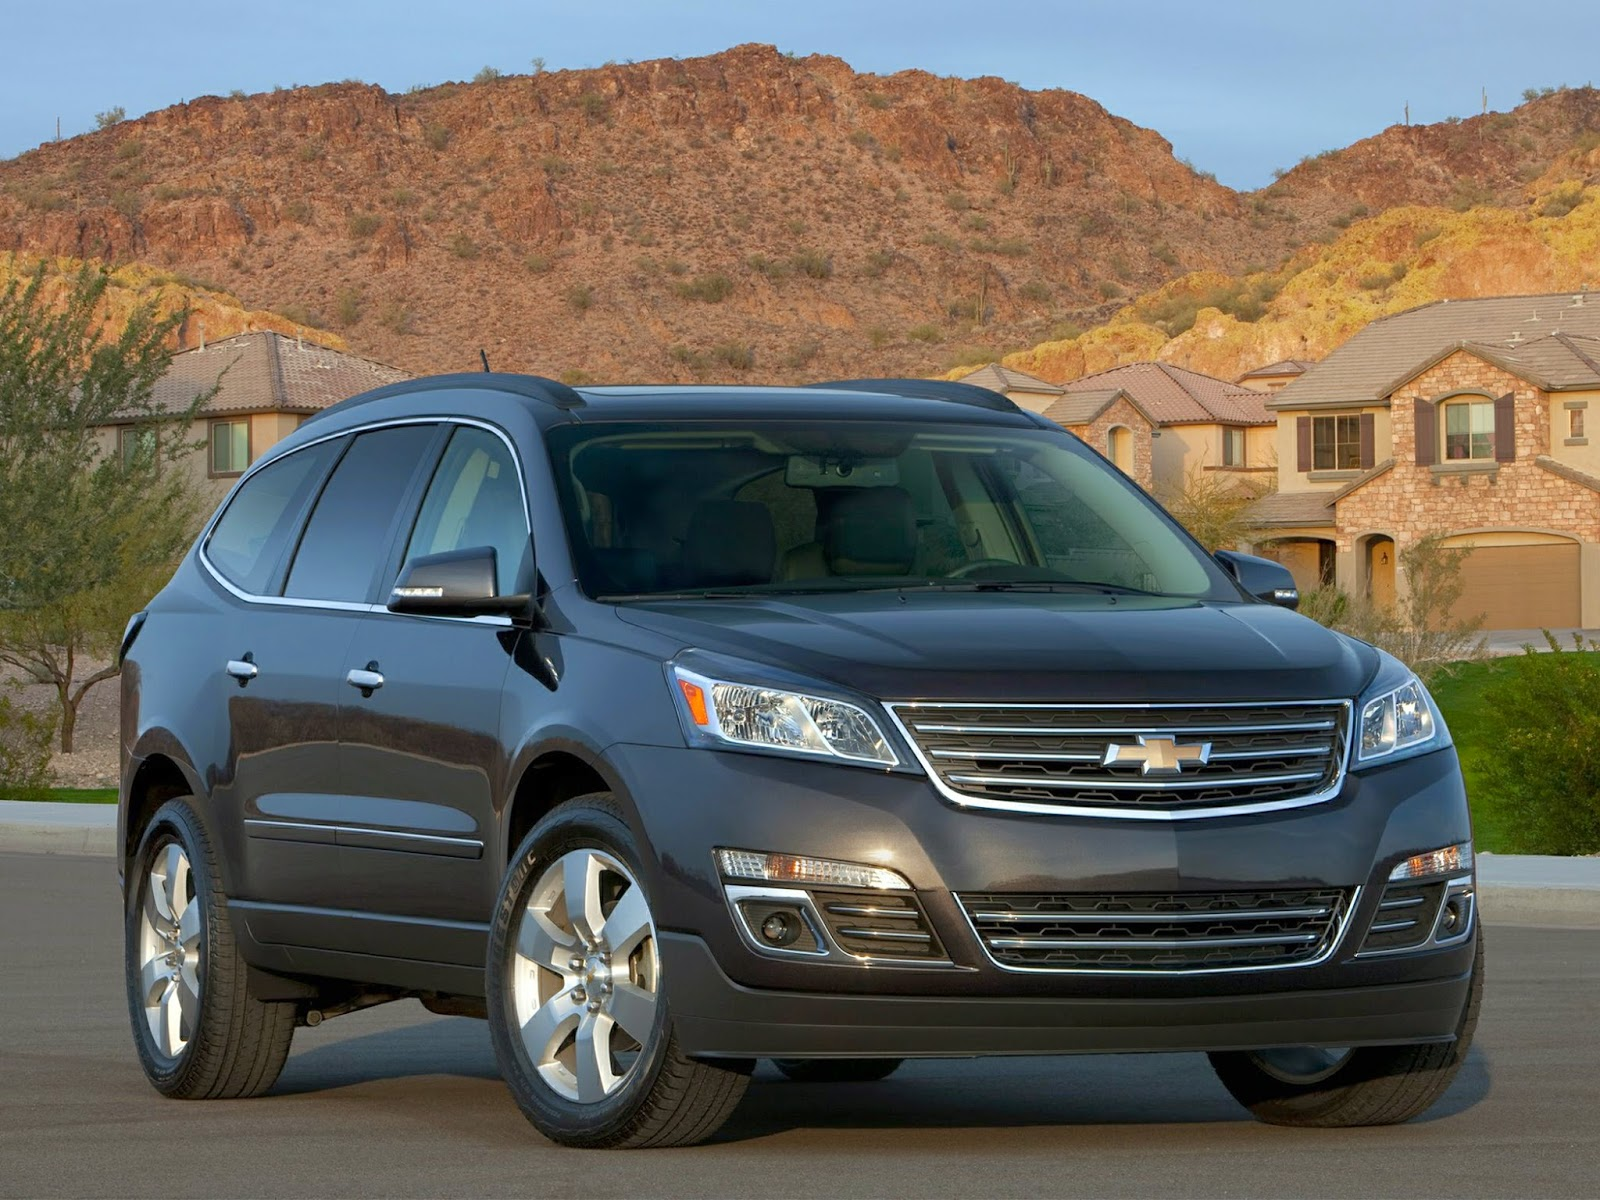 Chevrolet Traverse Makes 10 Best Family Cars List